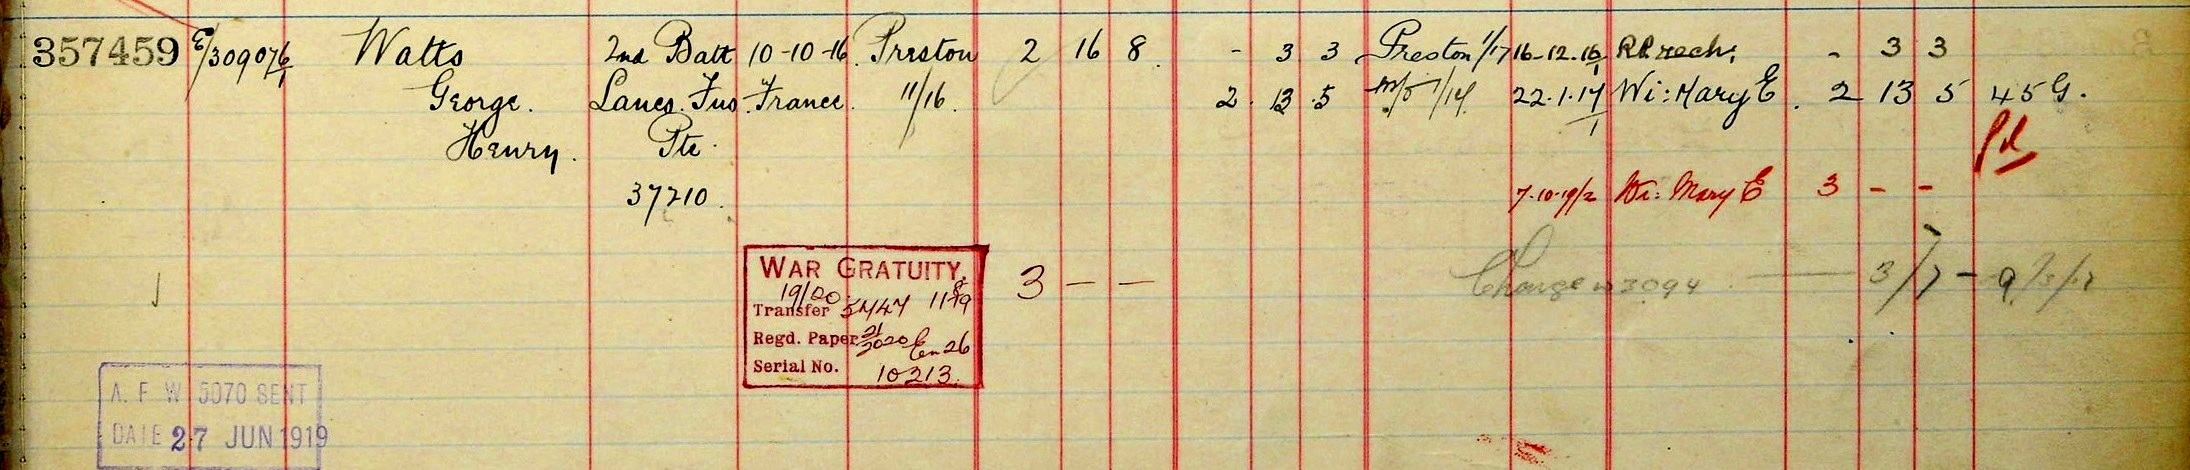 Extract from the    UK, Army Registers of Soldiers' Effects, 1901-1929    for Private George Henry Watts showing the war gratuity of £2 16s 8d was paid to George's widow.